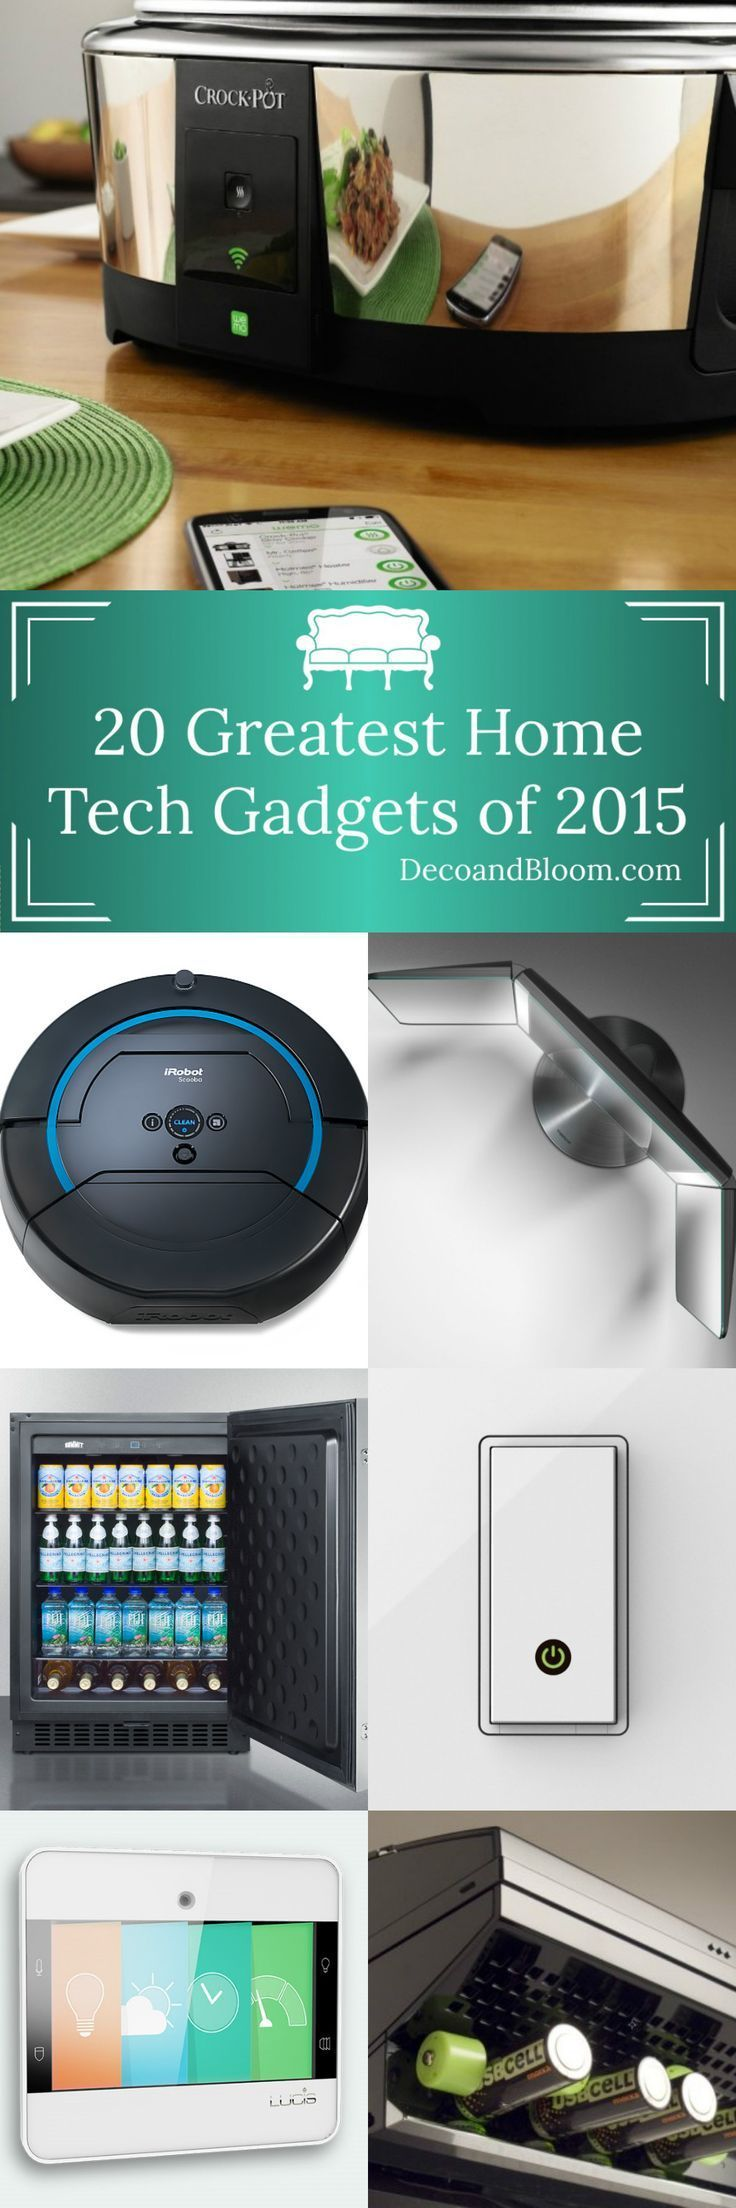 530 best Gadgets and Technology images on Pinterest | Cool things ...